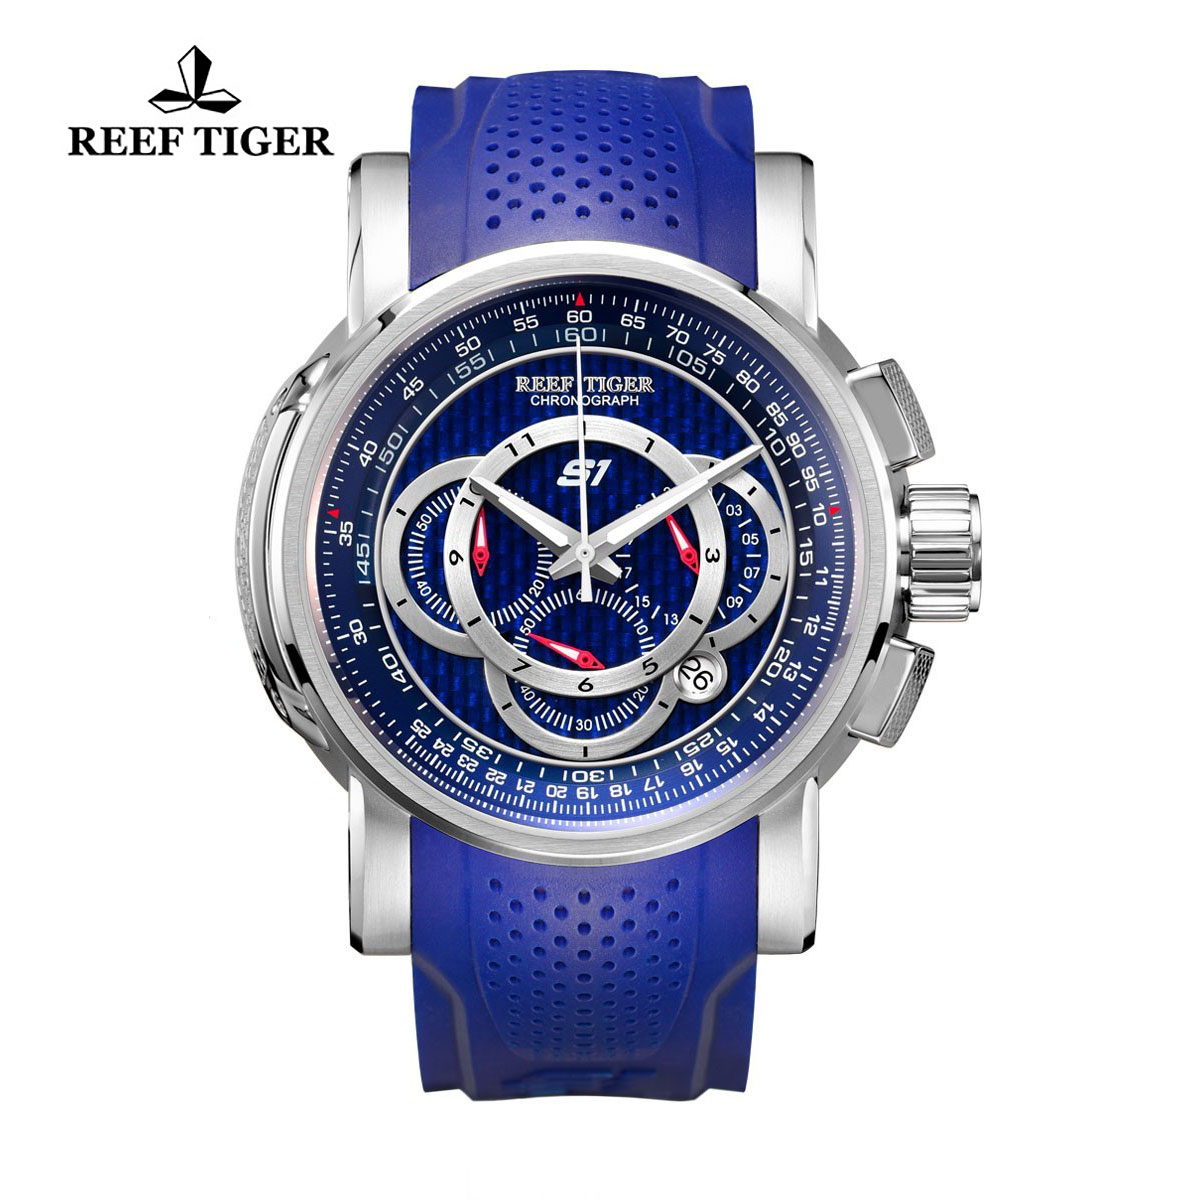 Reef Tiger Top Speed Sport Watches Chronograph Steel Case Blue Dial Rubber Strap Watches RGA3063-YLL